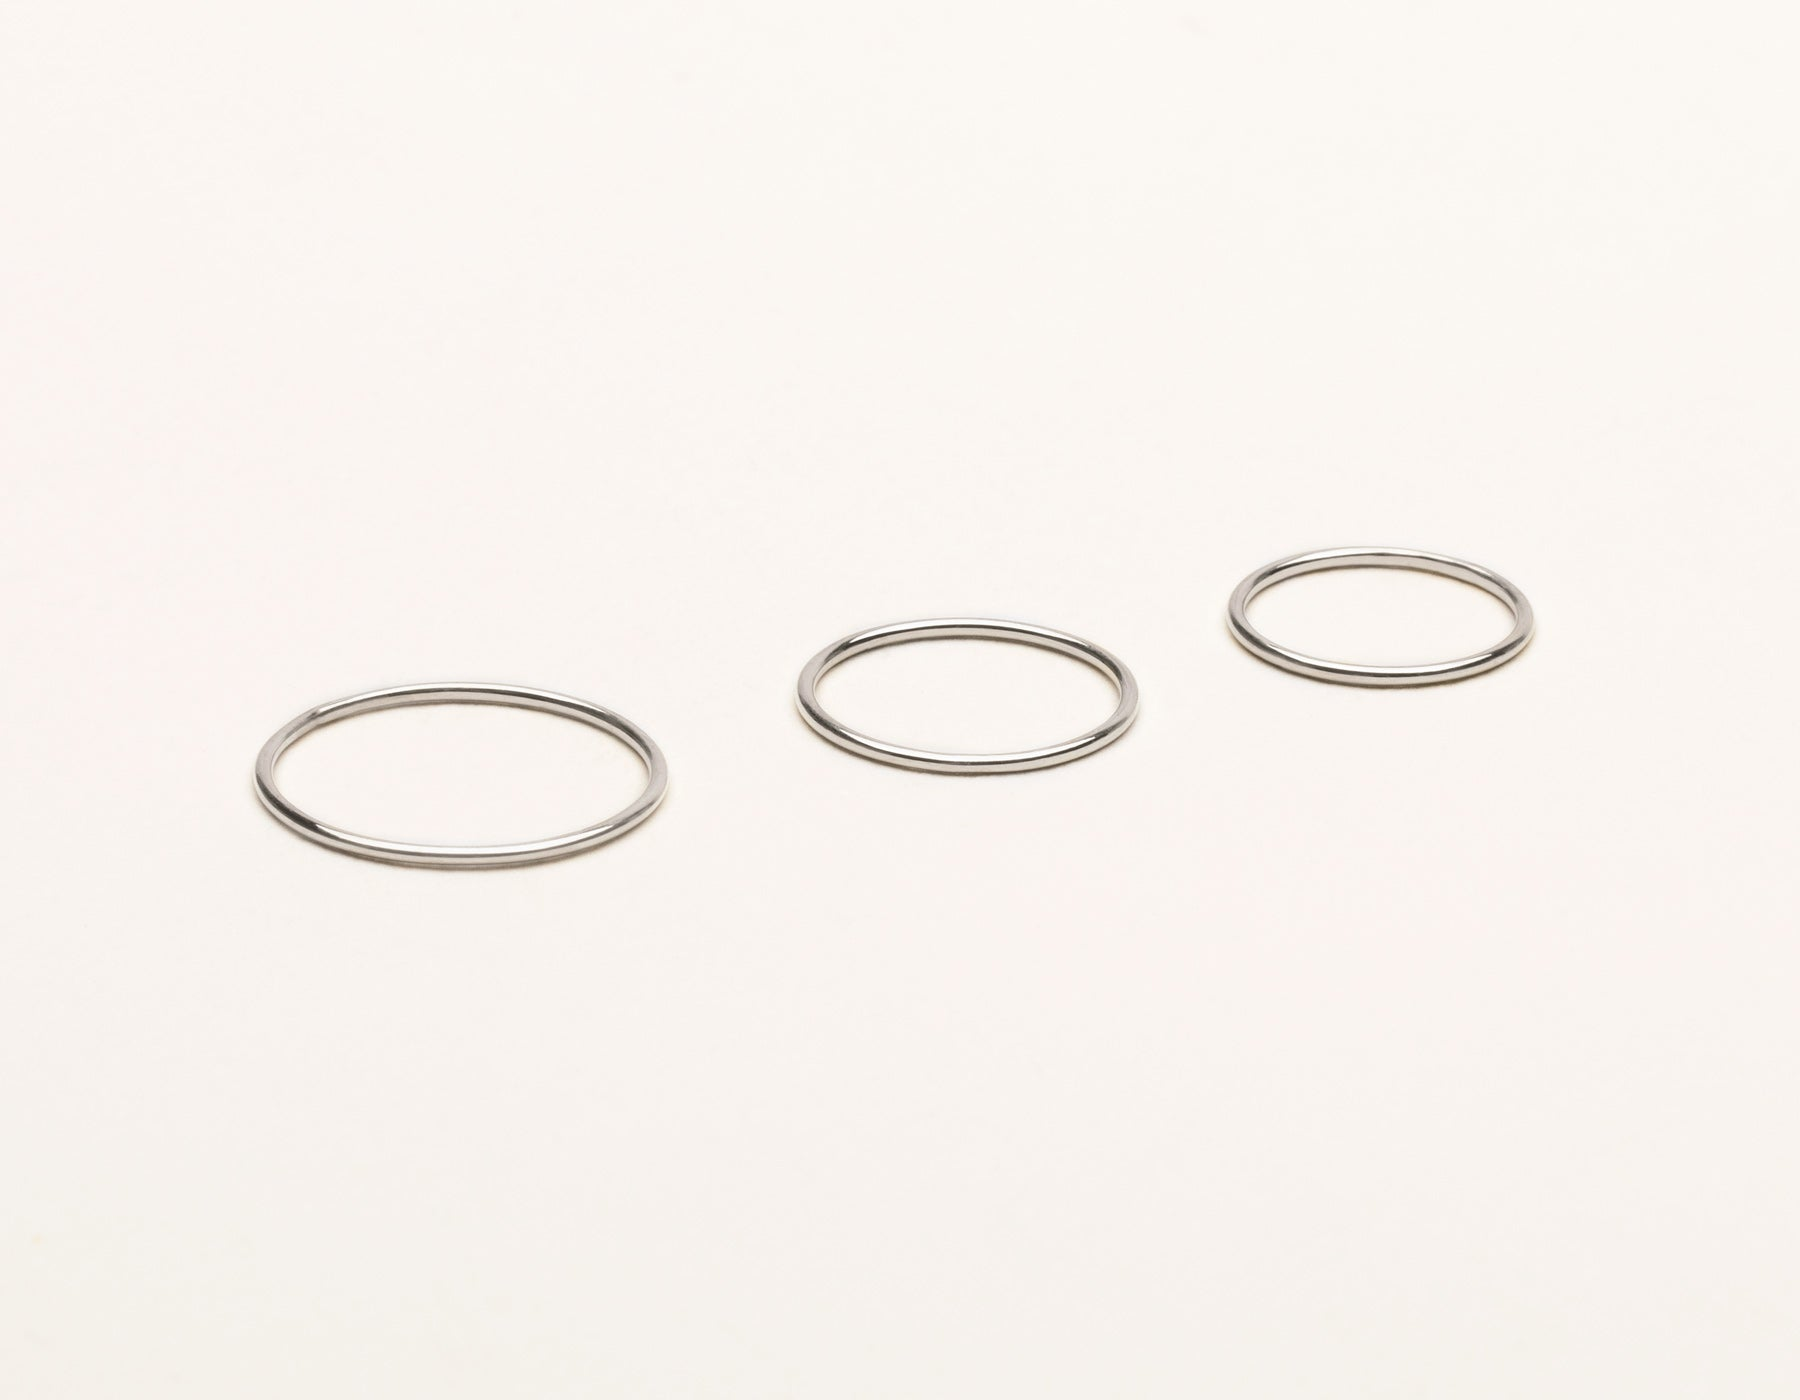 Skinny Stacker Ring Set 14k solid gold vrai & Oro plain round thin band, 14K White Gold